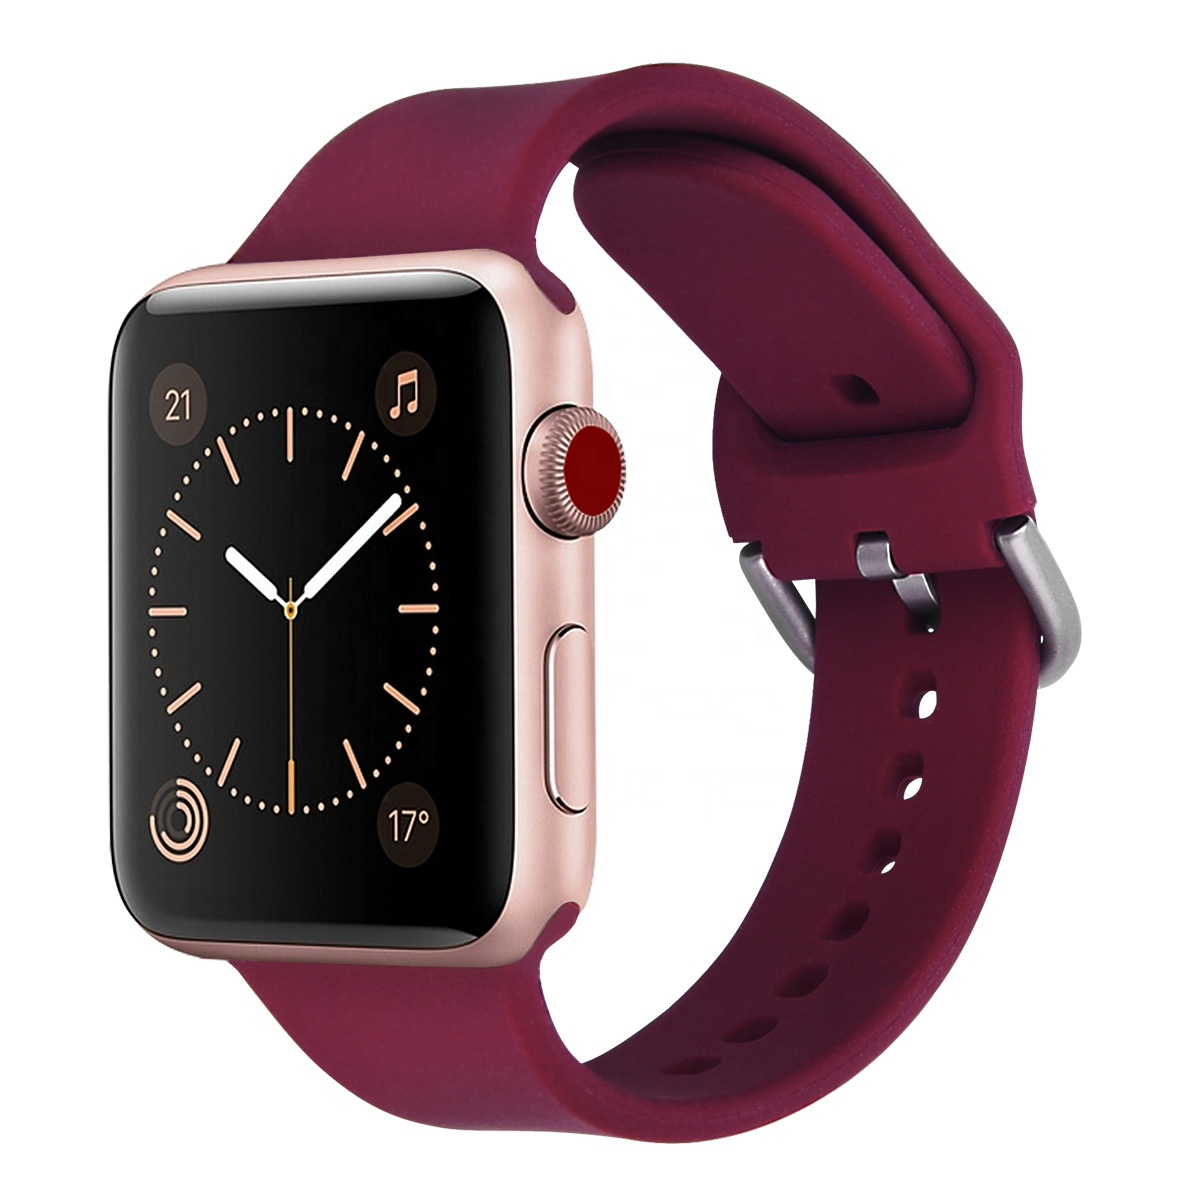 Alibaba.com / 2019 New buckle silicone strap for Apple Watch Fashionable design soft rubber watch band for iwatch